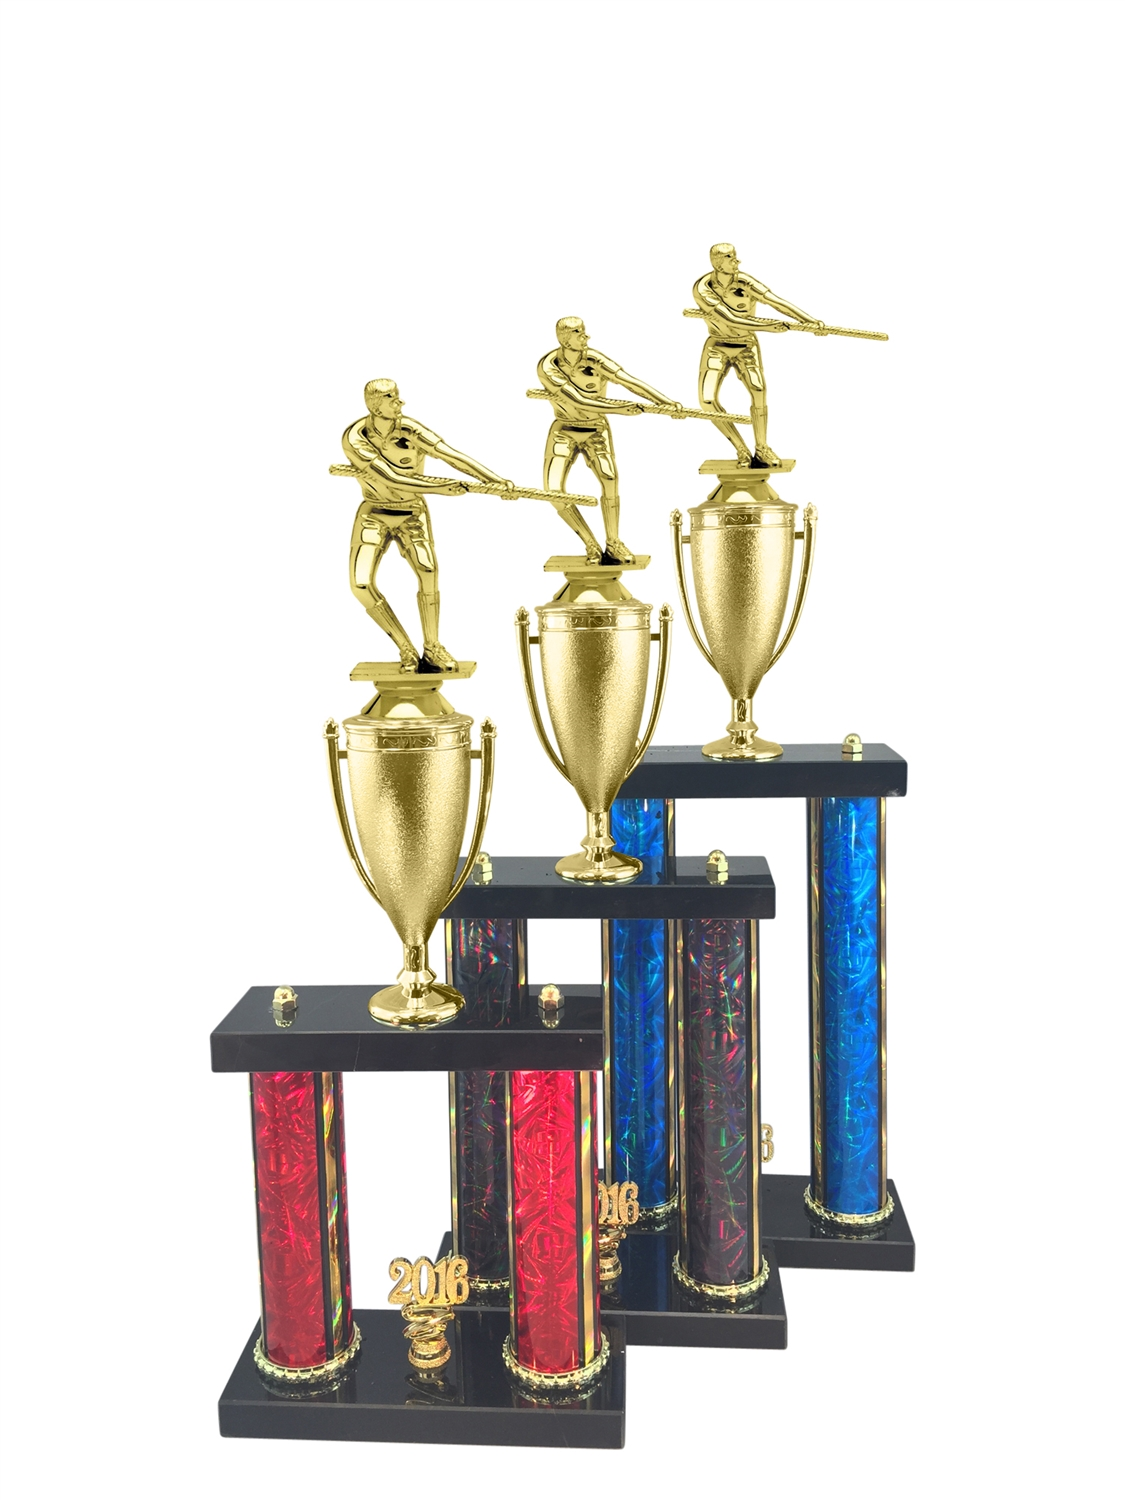 Tug of War Trophy Available in 11 Color & 3 Size Options